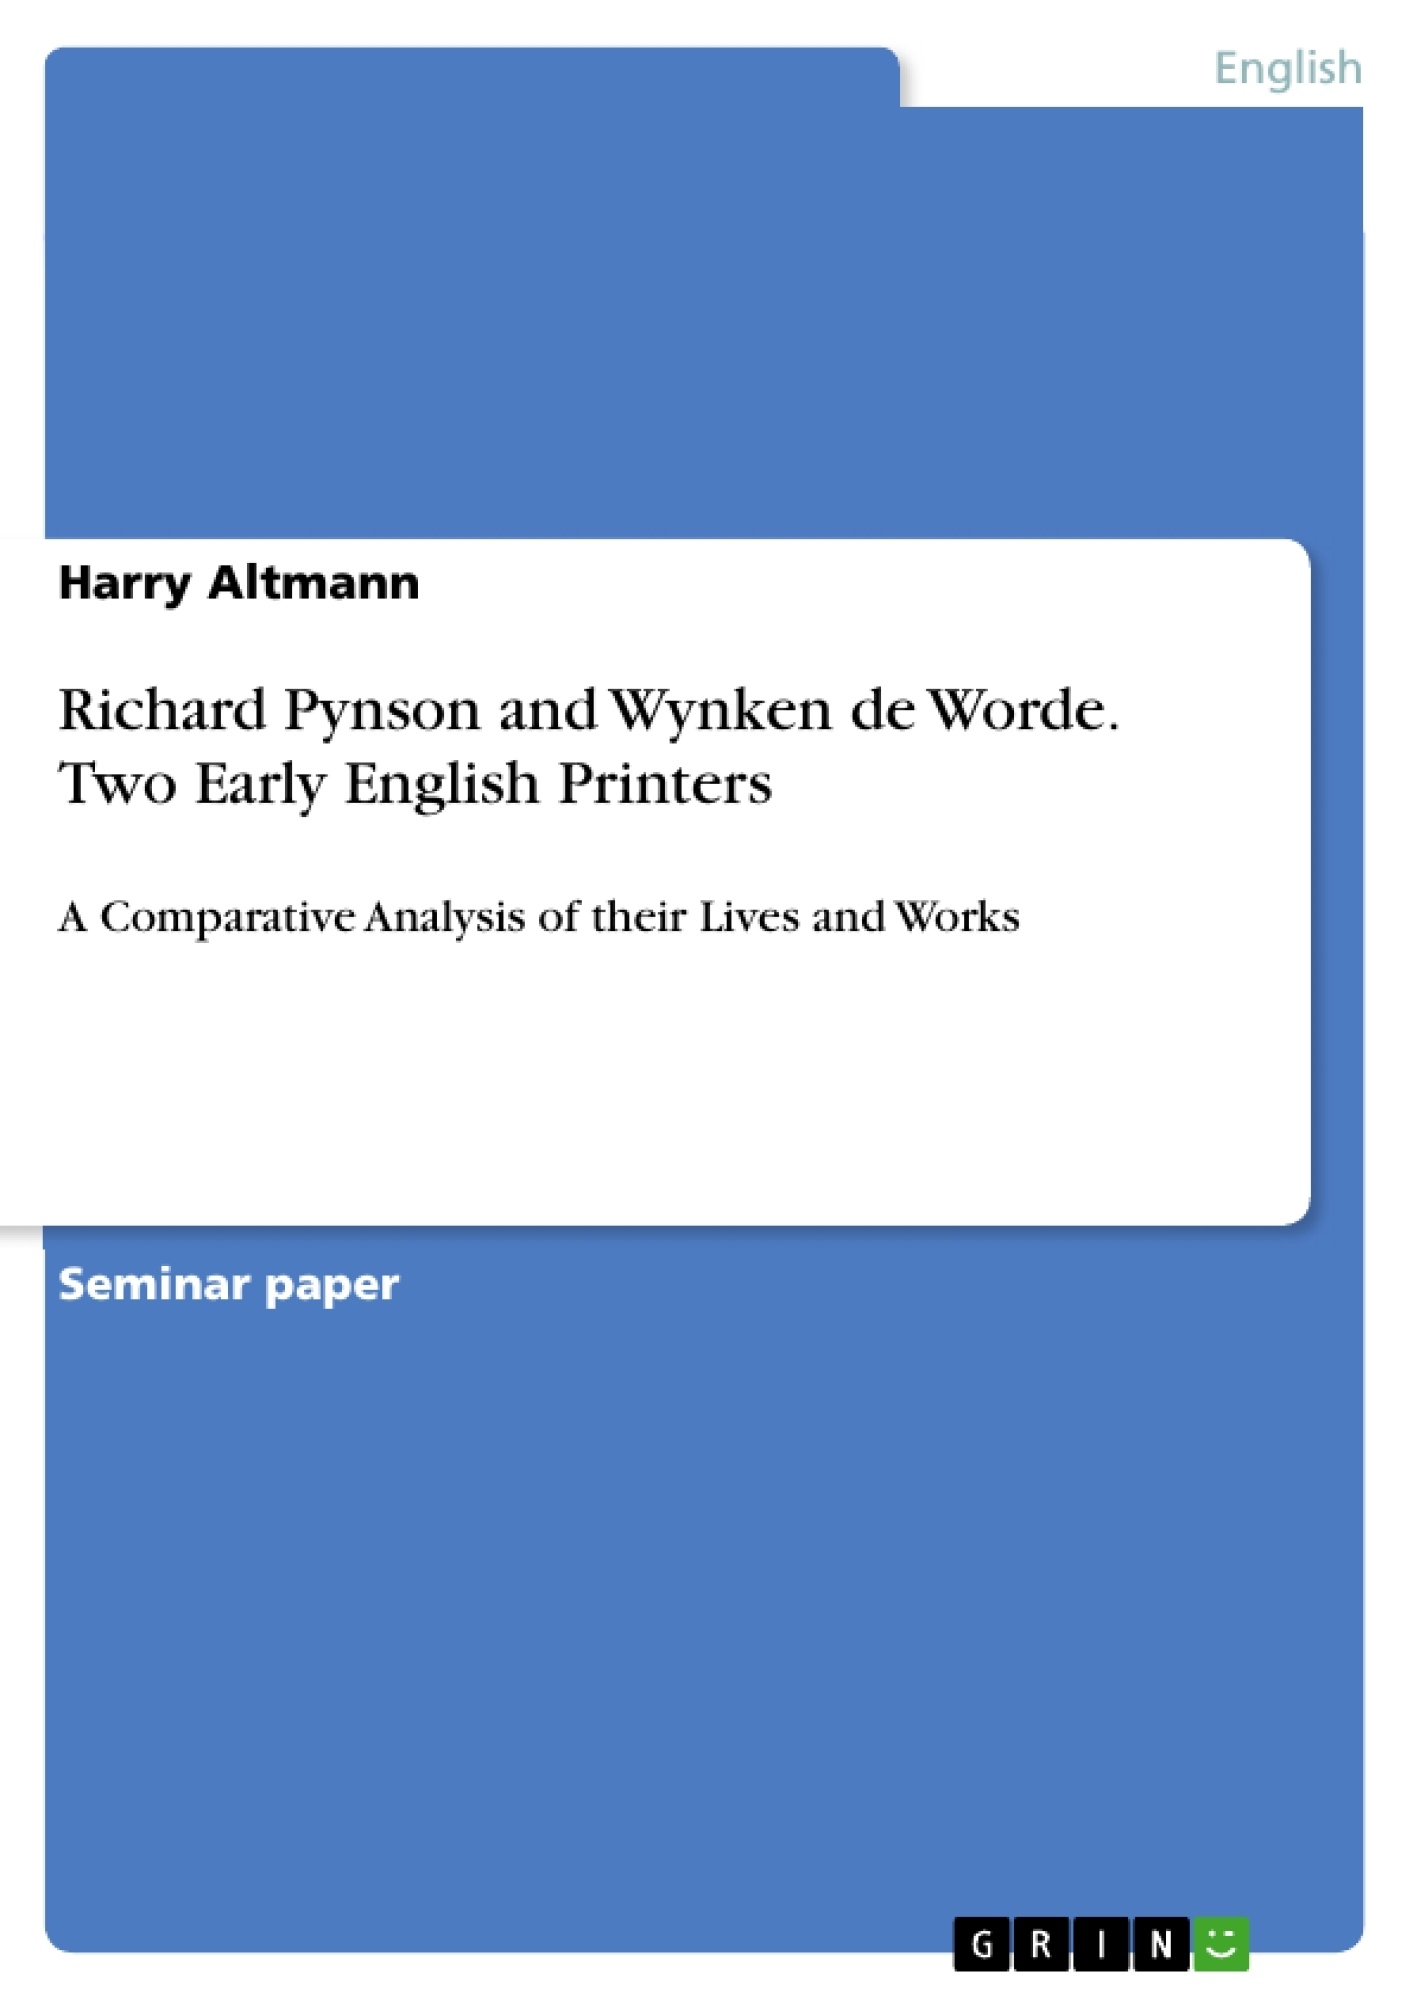 Title: Richard Pynson and Wynken de Worde. Two Early English Printers